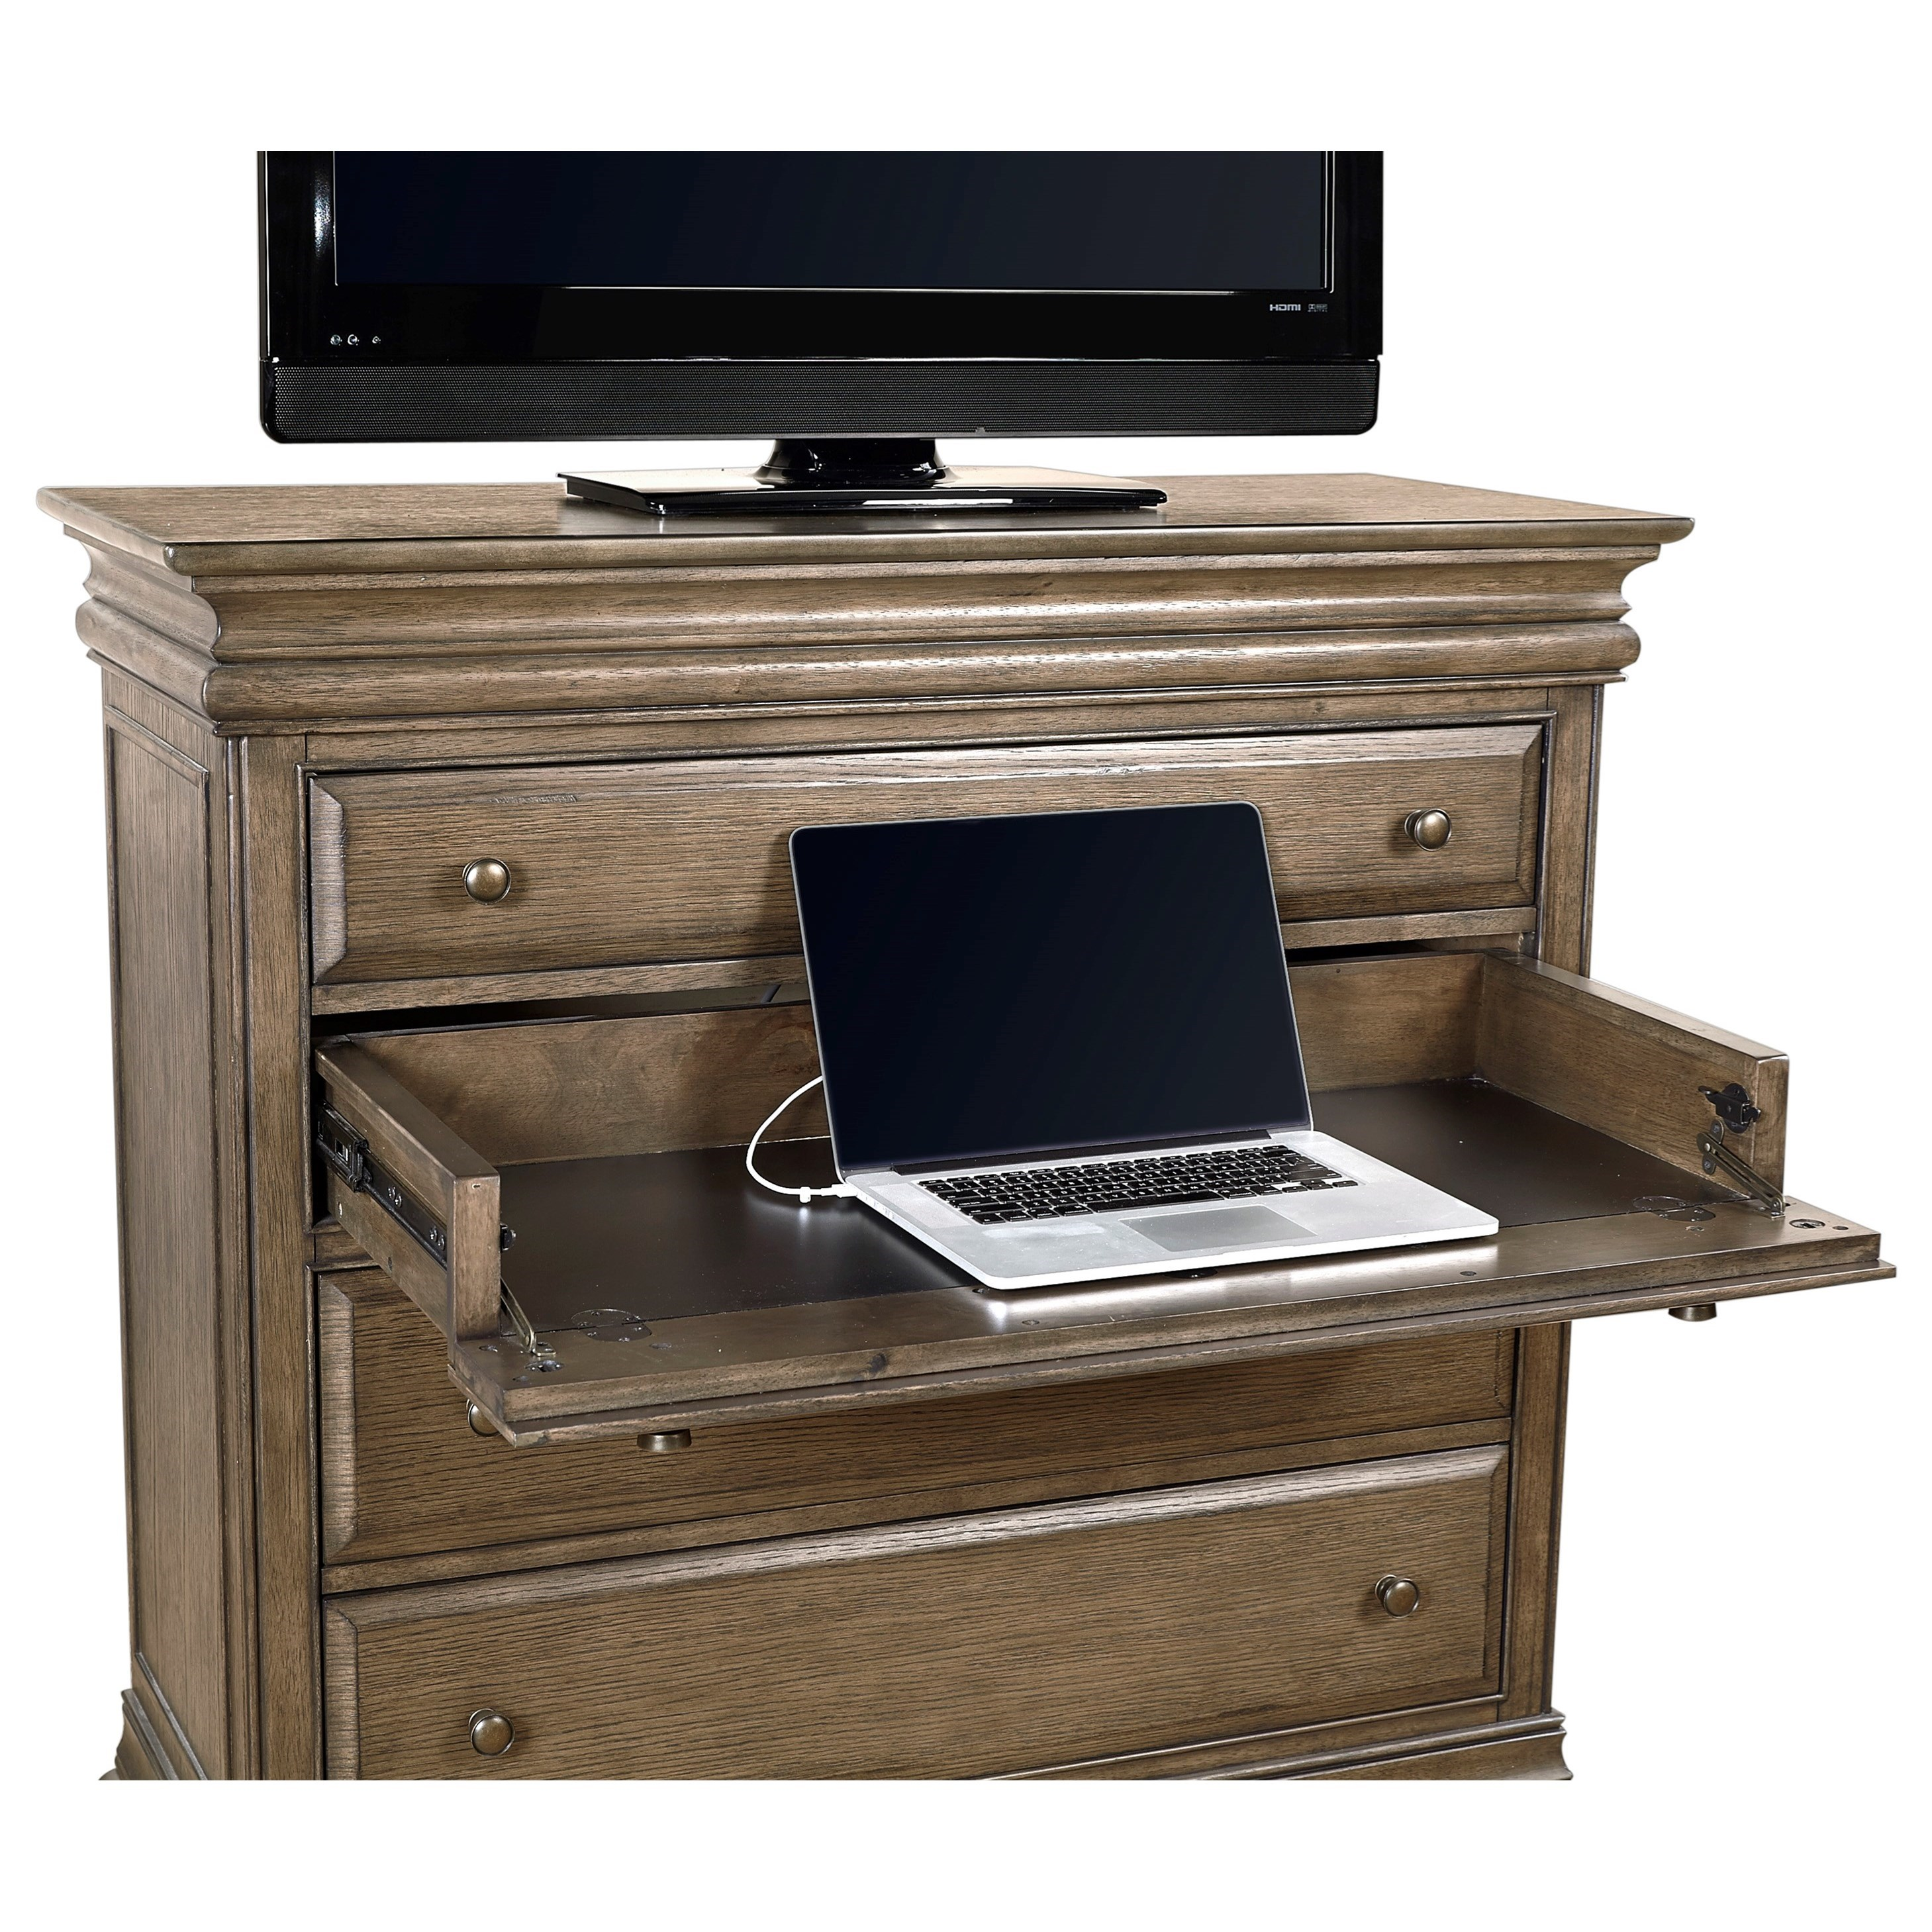 Aspenhome Arcadia I92 486 Media Chest With Outlets Becker Furniture World Media Chests